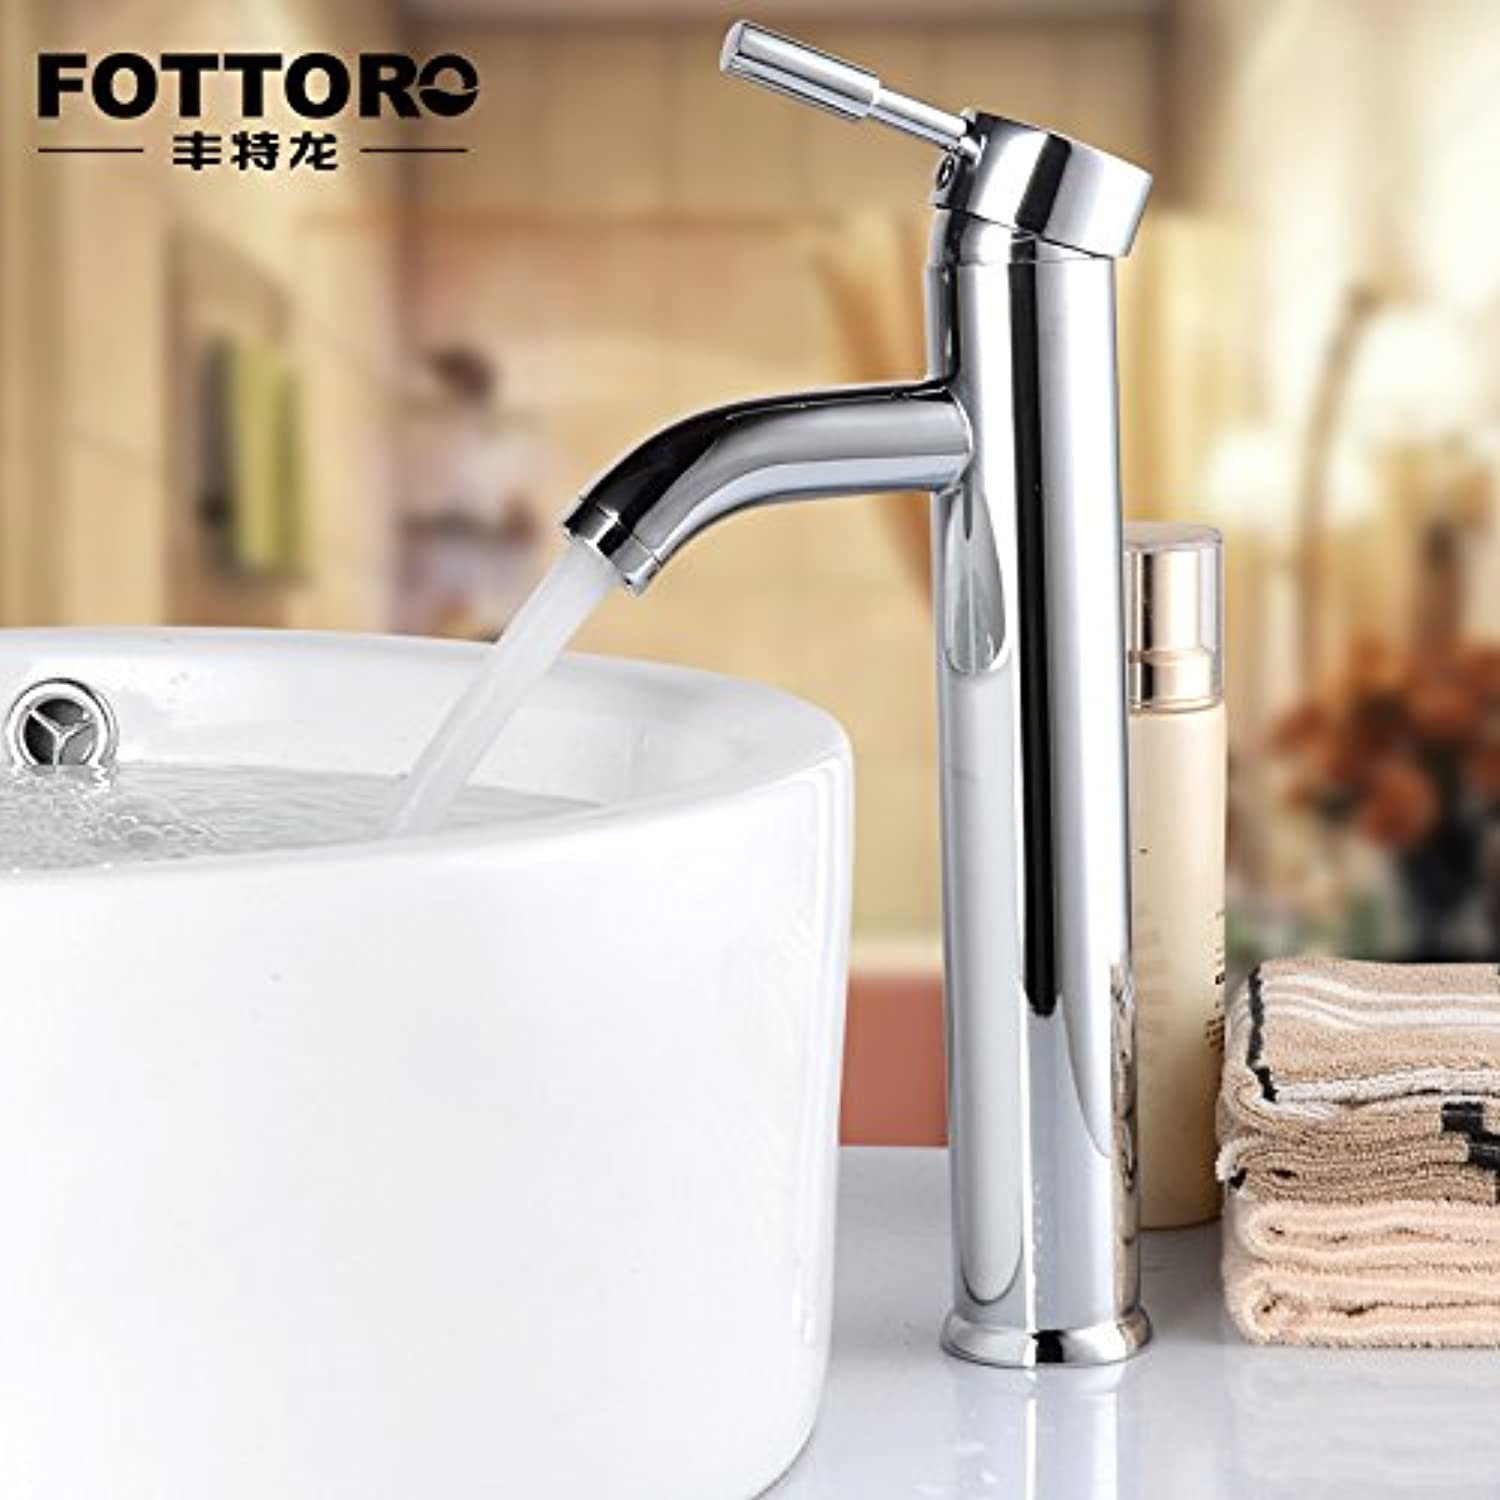 Decorry All Copper Basin Faucet Hot and Cold Taps On Stage Basin Faucet Washbasin Single Hole Faucet Heightening